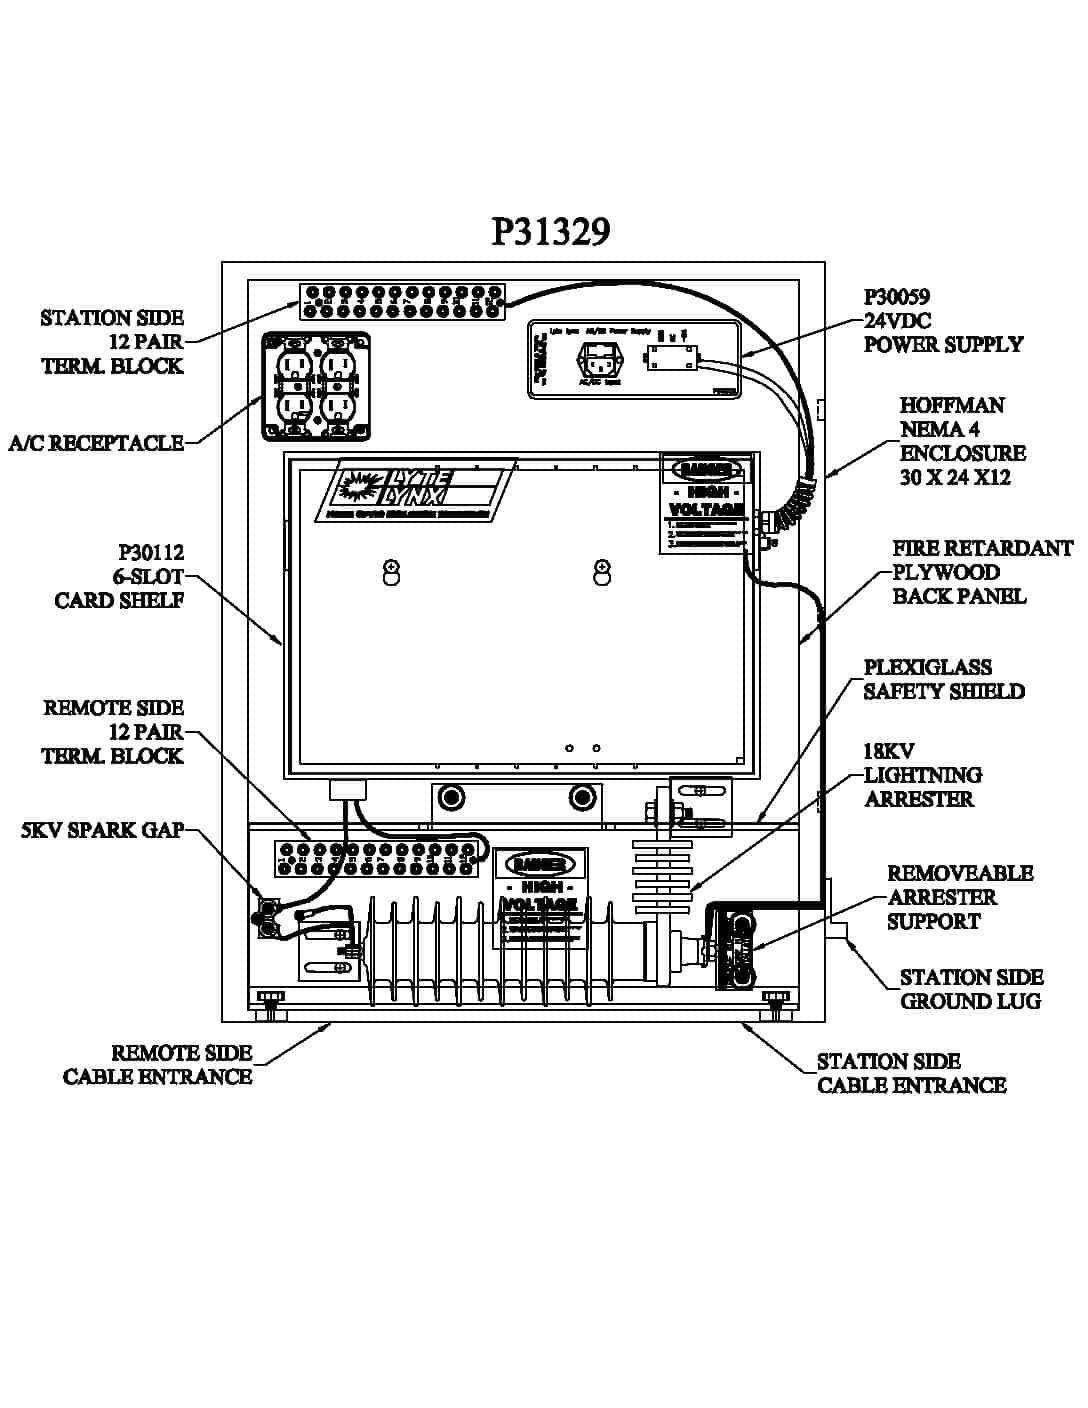 P31329 Turnkey Protection Packages – 6 slot PDF thumbnail